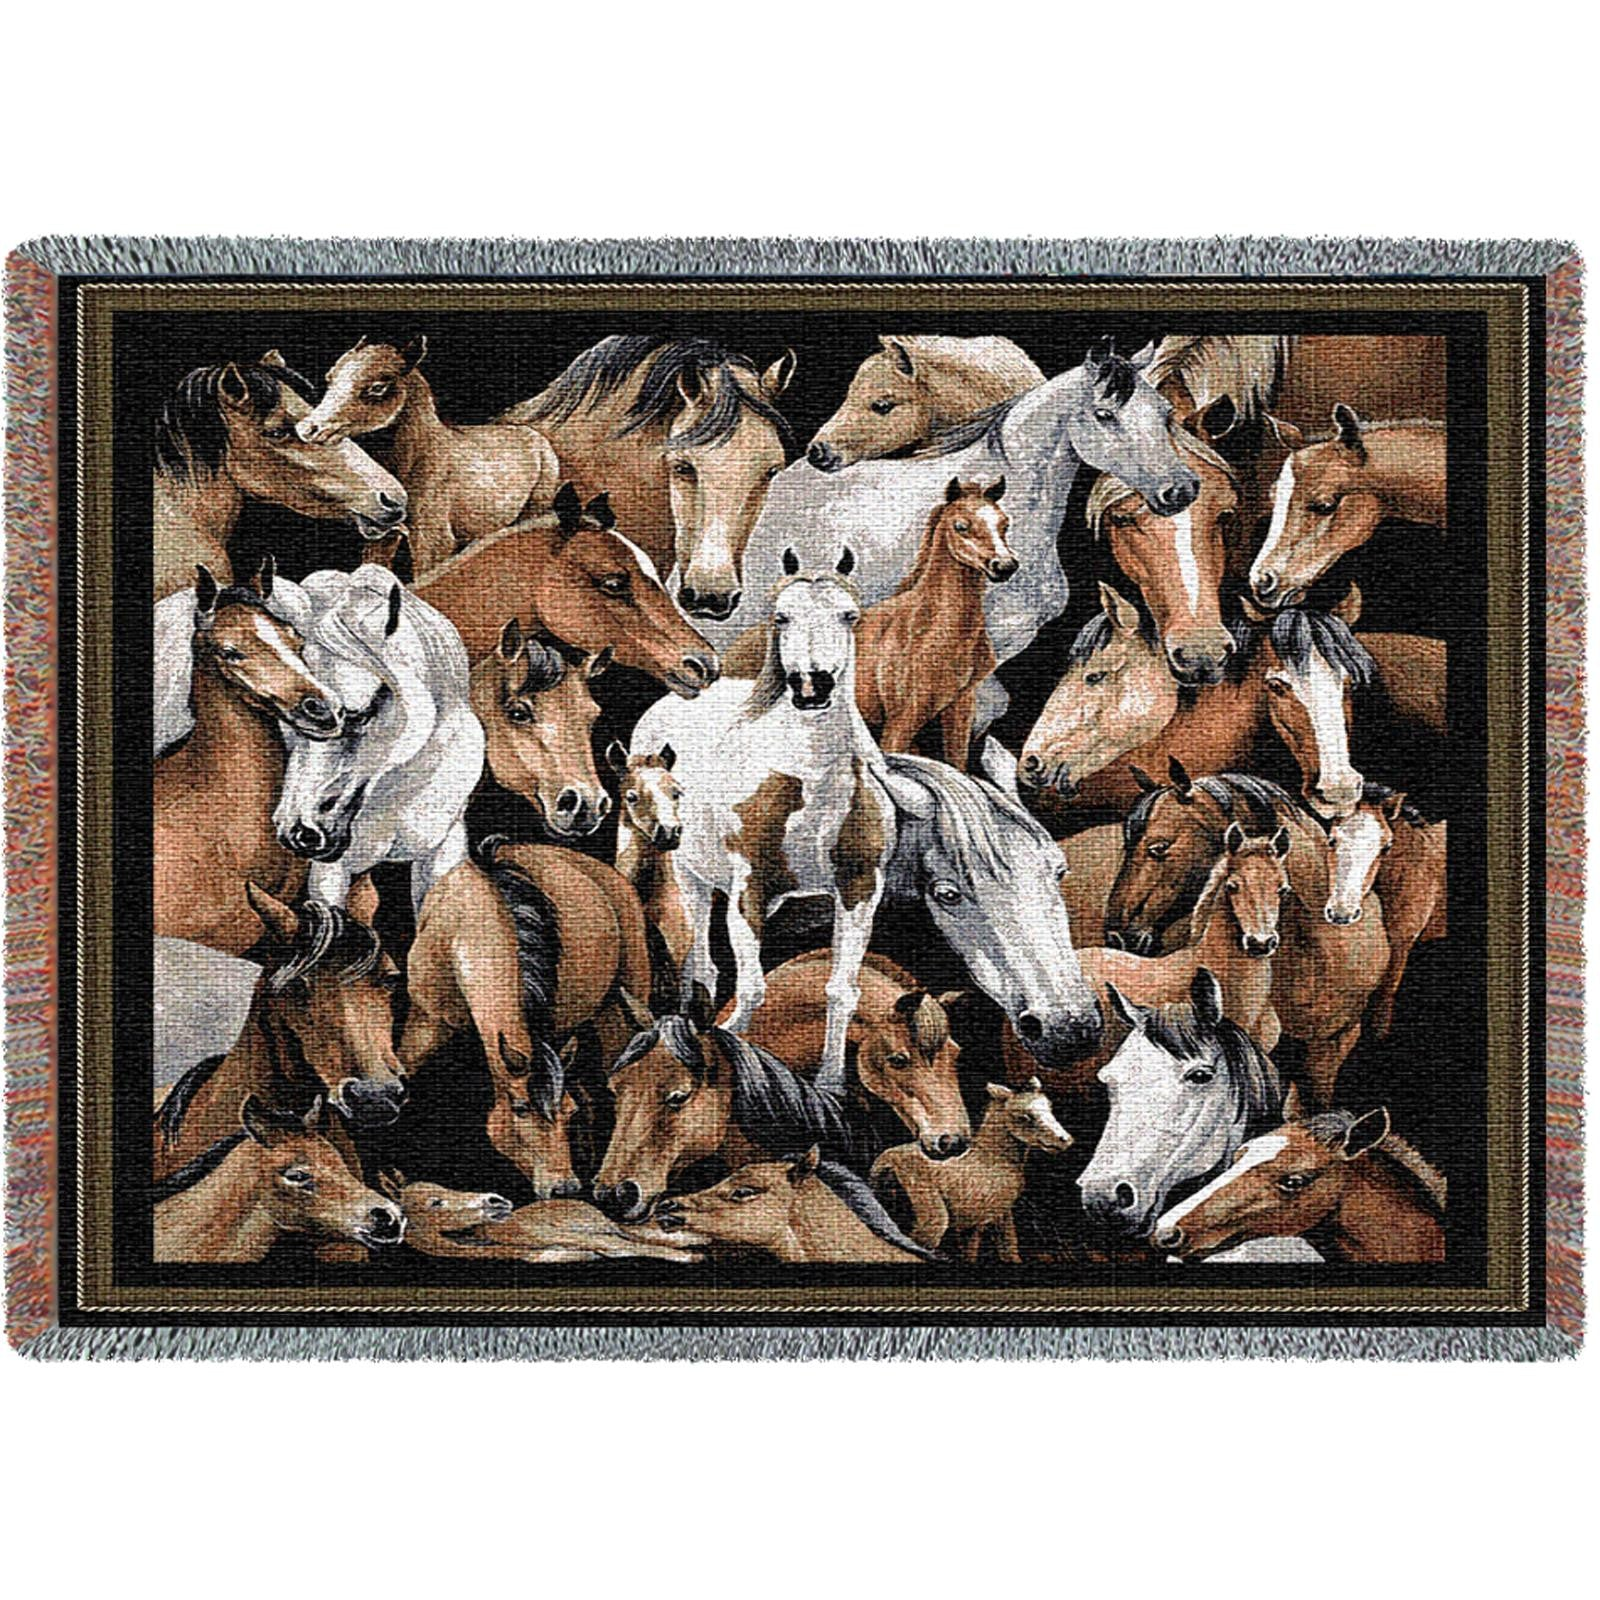 Stampede (Equestrian) Tapestry Throw